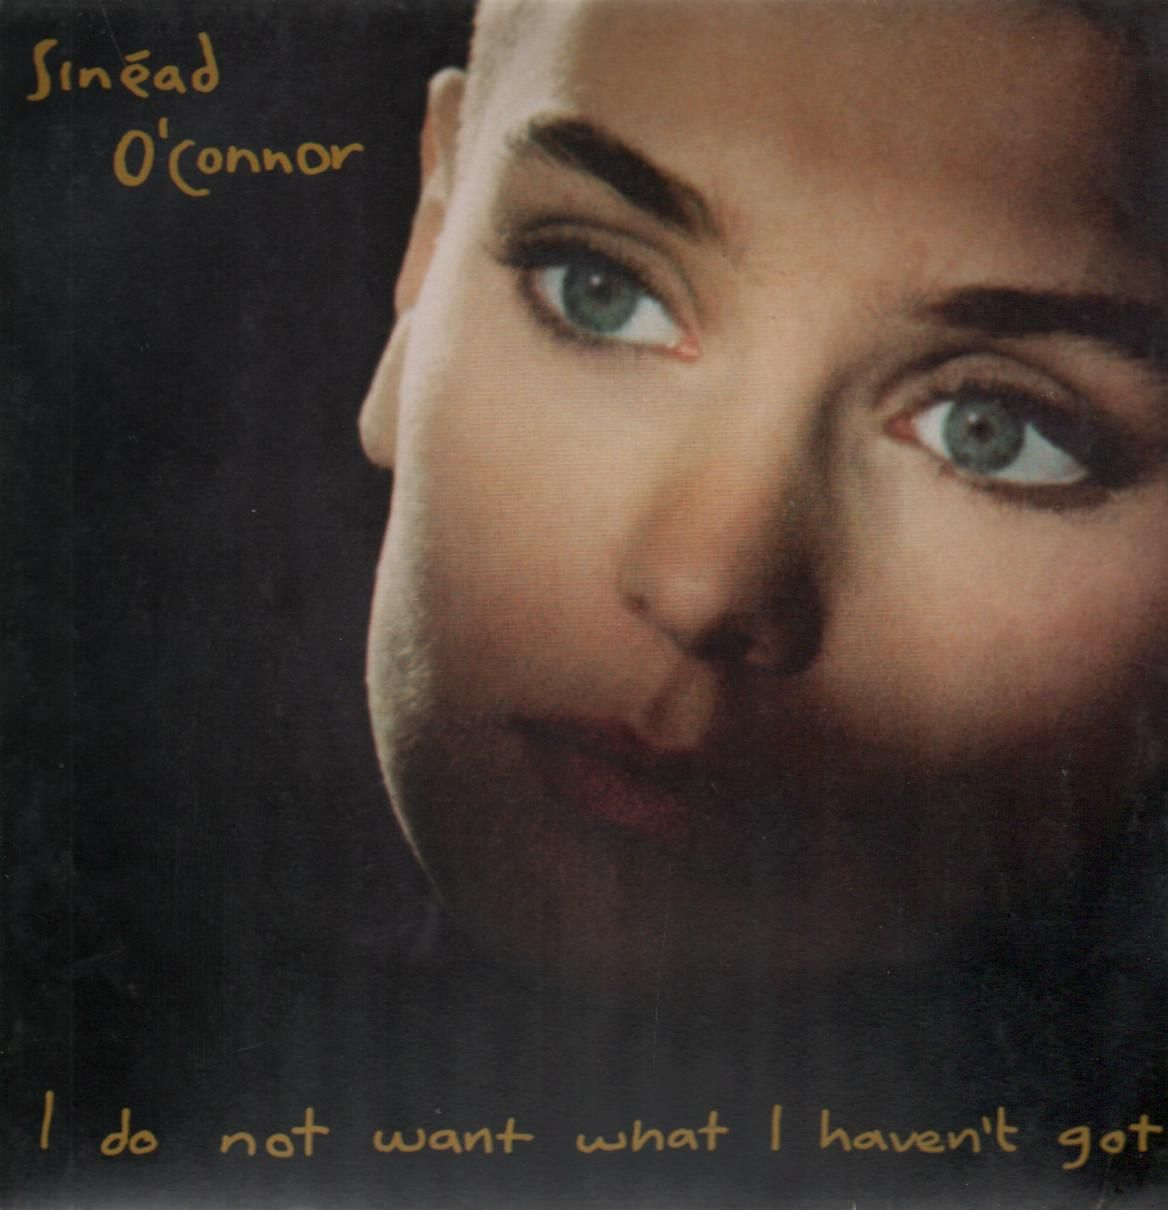 http://2.bp.blogspot.com/-Li1Pju79OYM/UQ6QsmZ_uUI/AAAAAAAABYg/4g1ZOZKqjrU/s1600/sinead_oconnor-i_do_not_want_what_i_havent_got(3).jpg